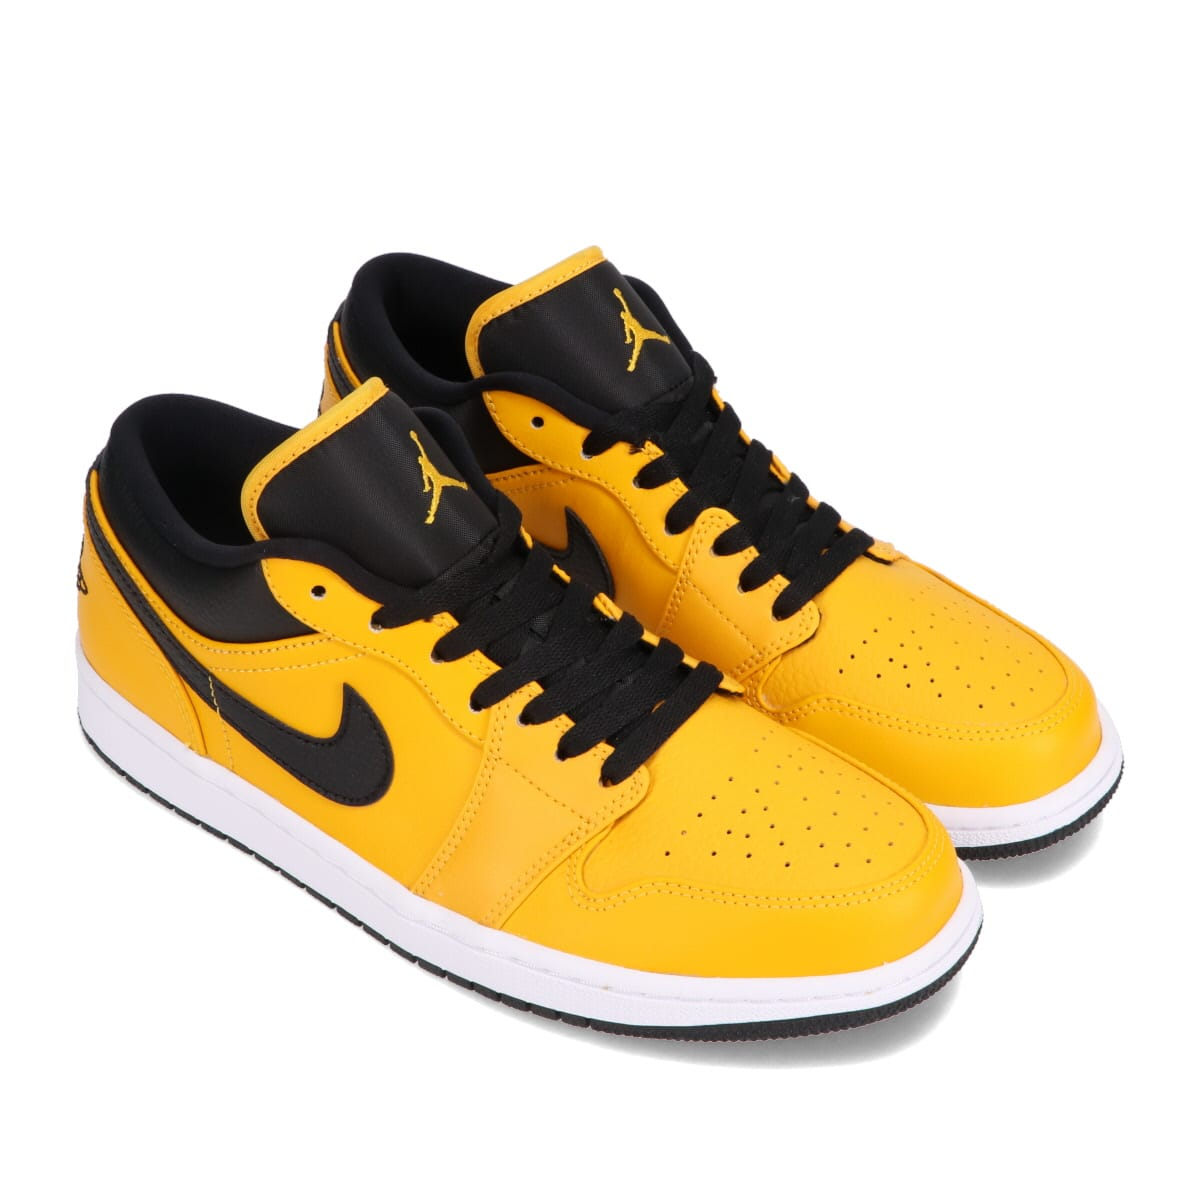 JORDAN BRAND AIR JORDAN 1 LOW UNIVERSITY GOLD/BLACK-WHITE 21SP-I_photo_large